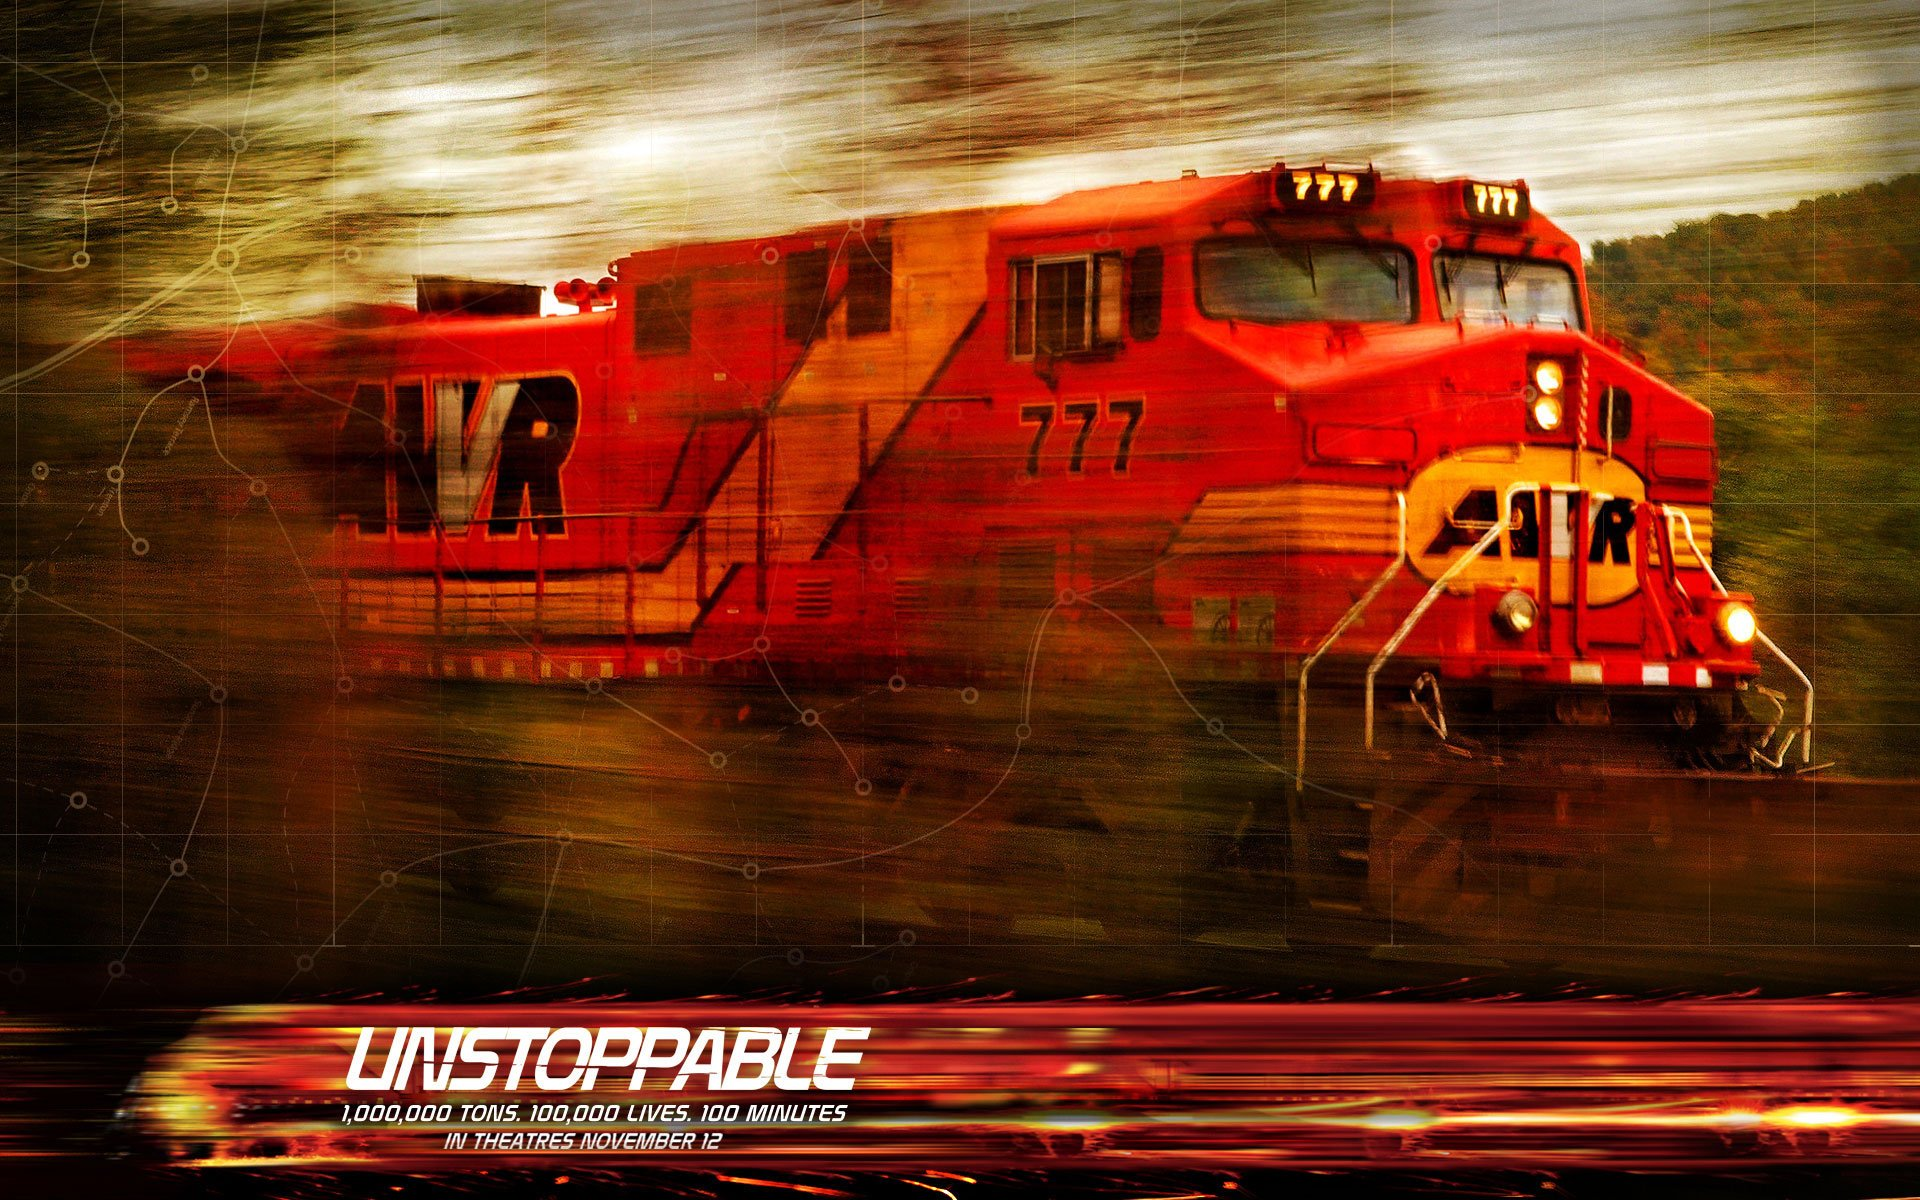 Unstoppable wallpapers Unstoppable stock photos 1920x1200